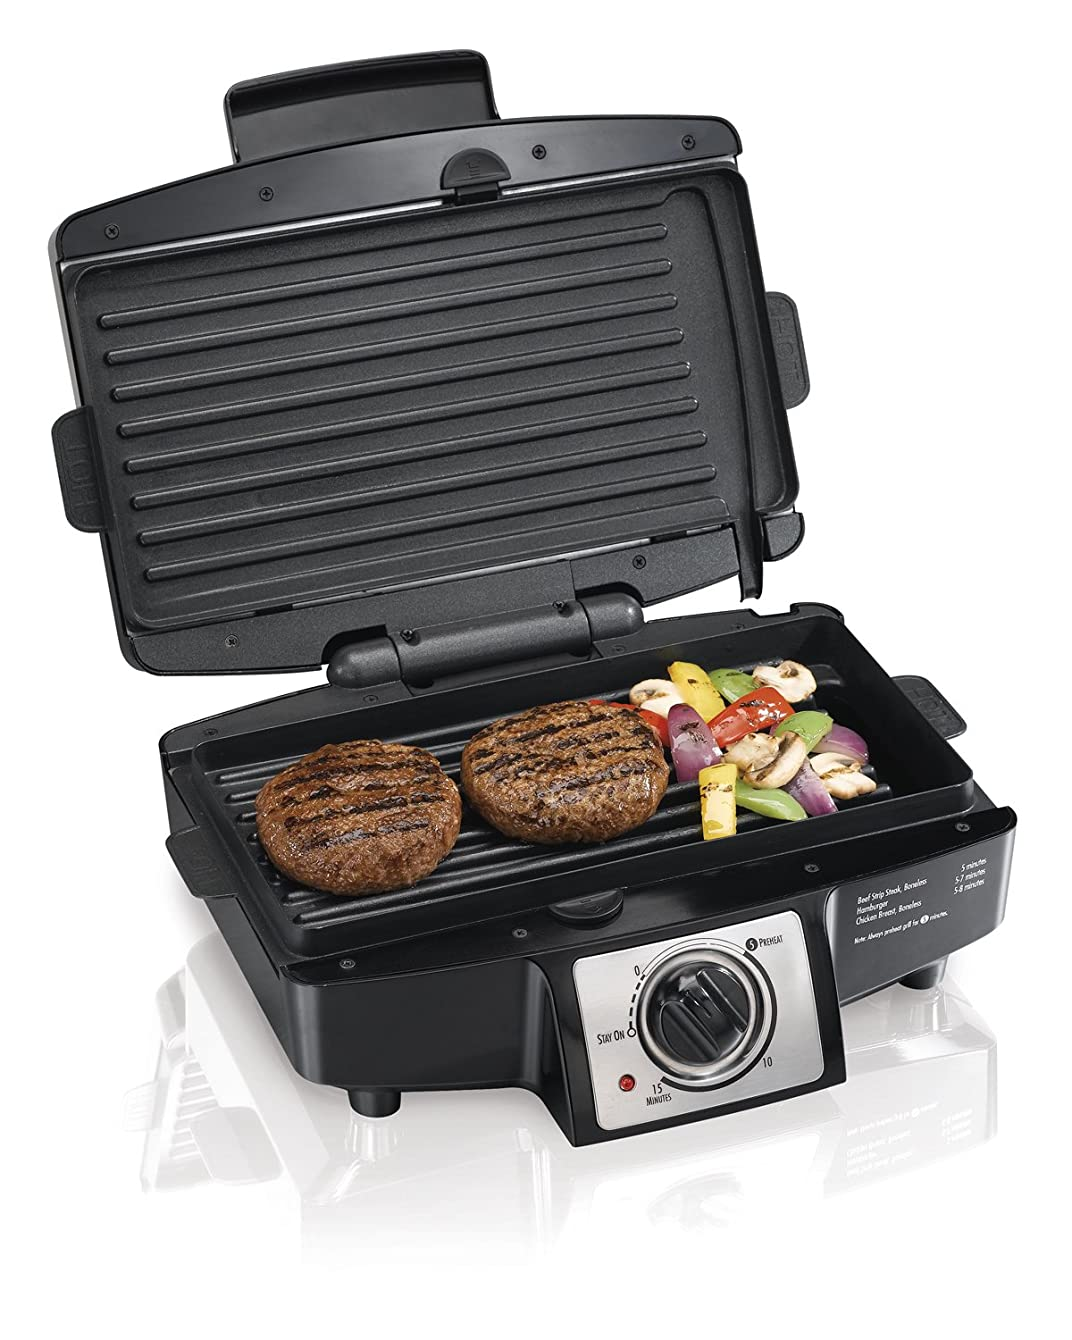 Hamilton Beach 040094253326 25332 Electric Indoor Grill with Non Stick Removable Plates, 110